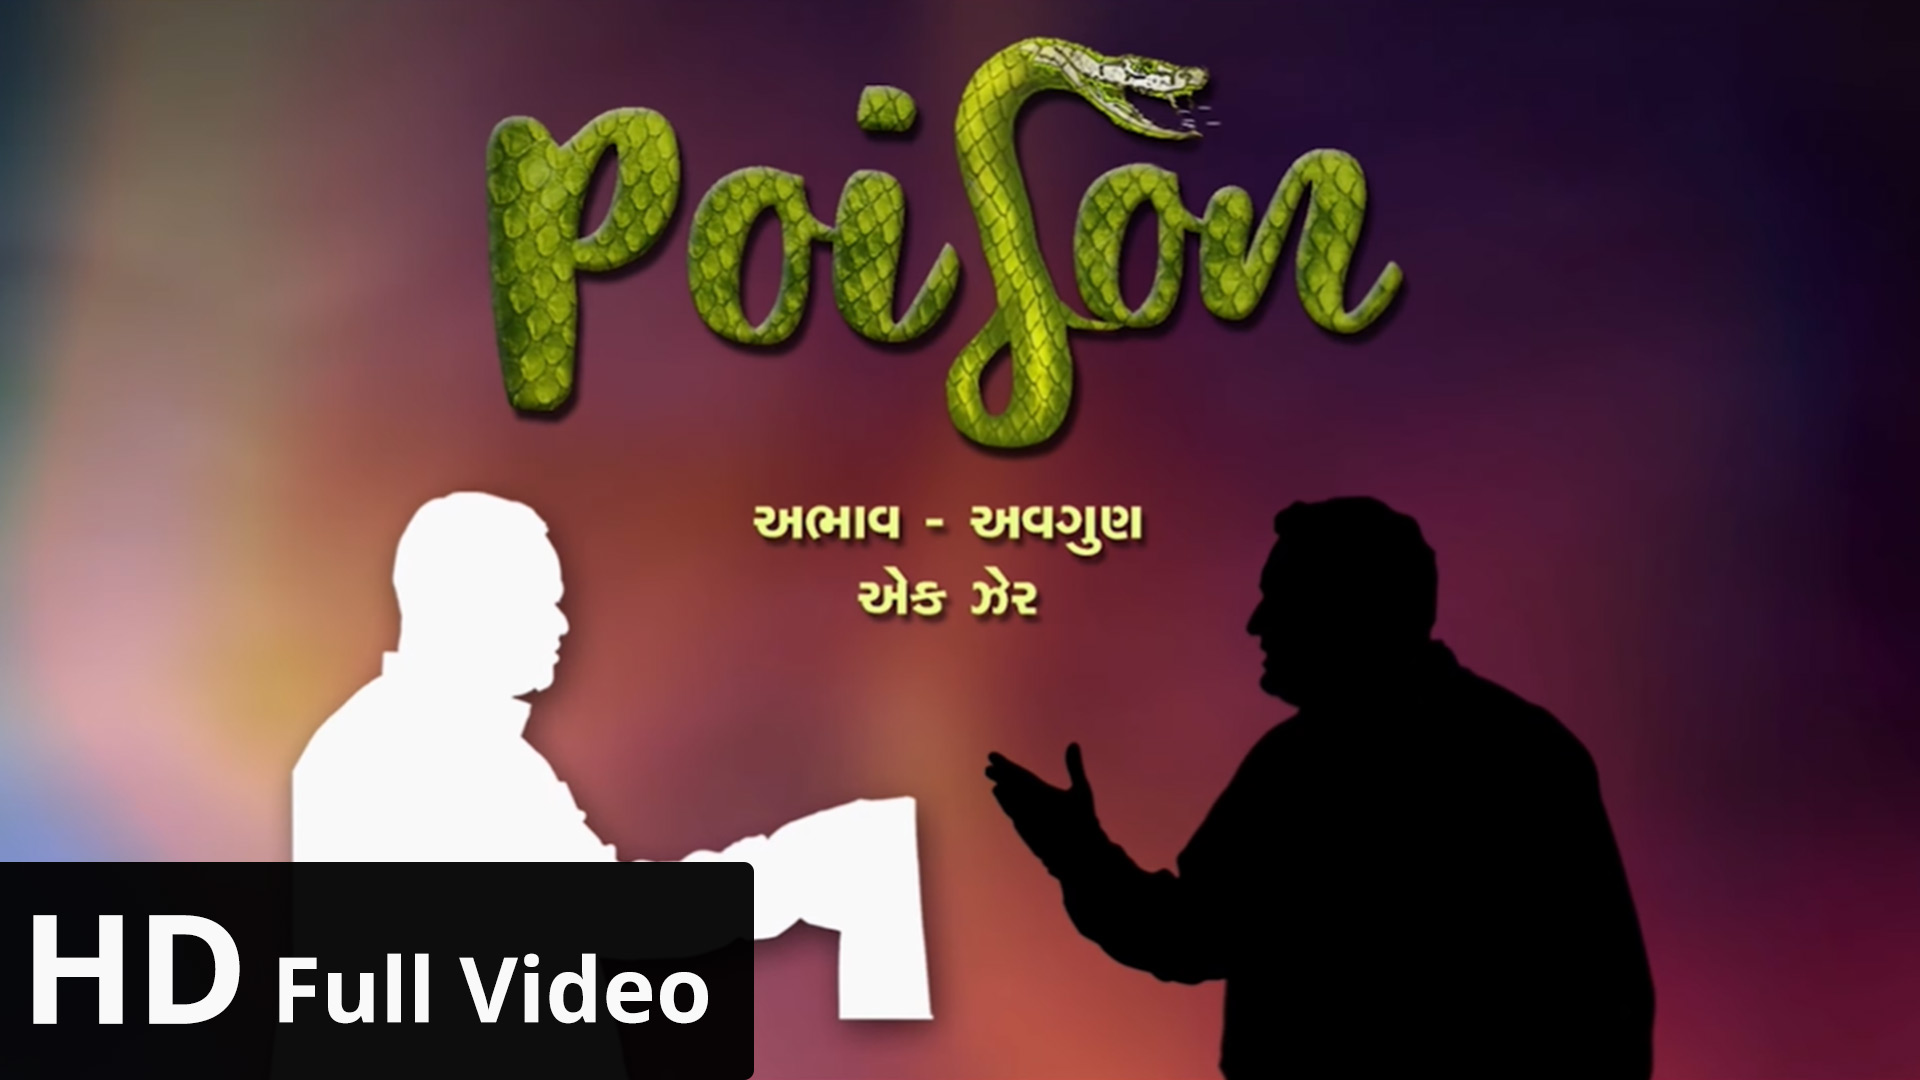 Poison | Swaminarayan Telefilm (Gujarati) | Short Film | Full HD Video